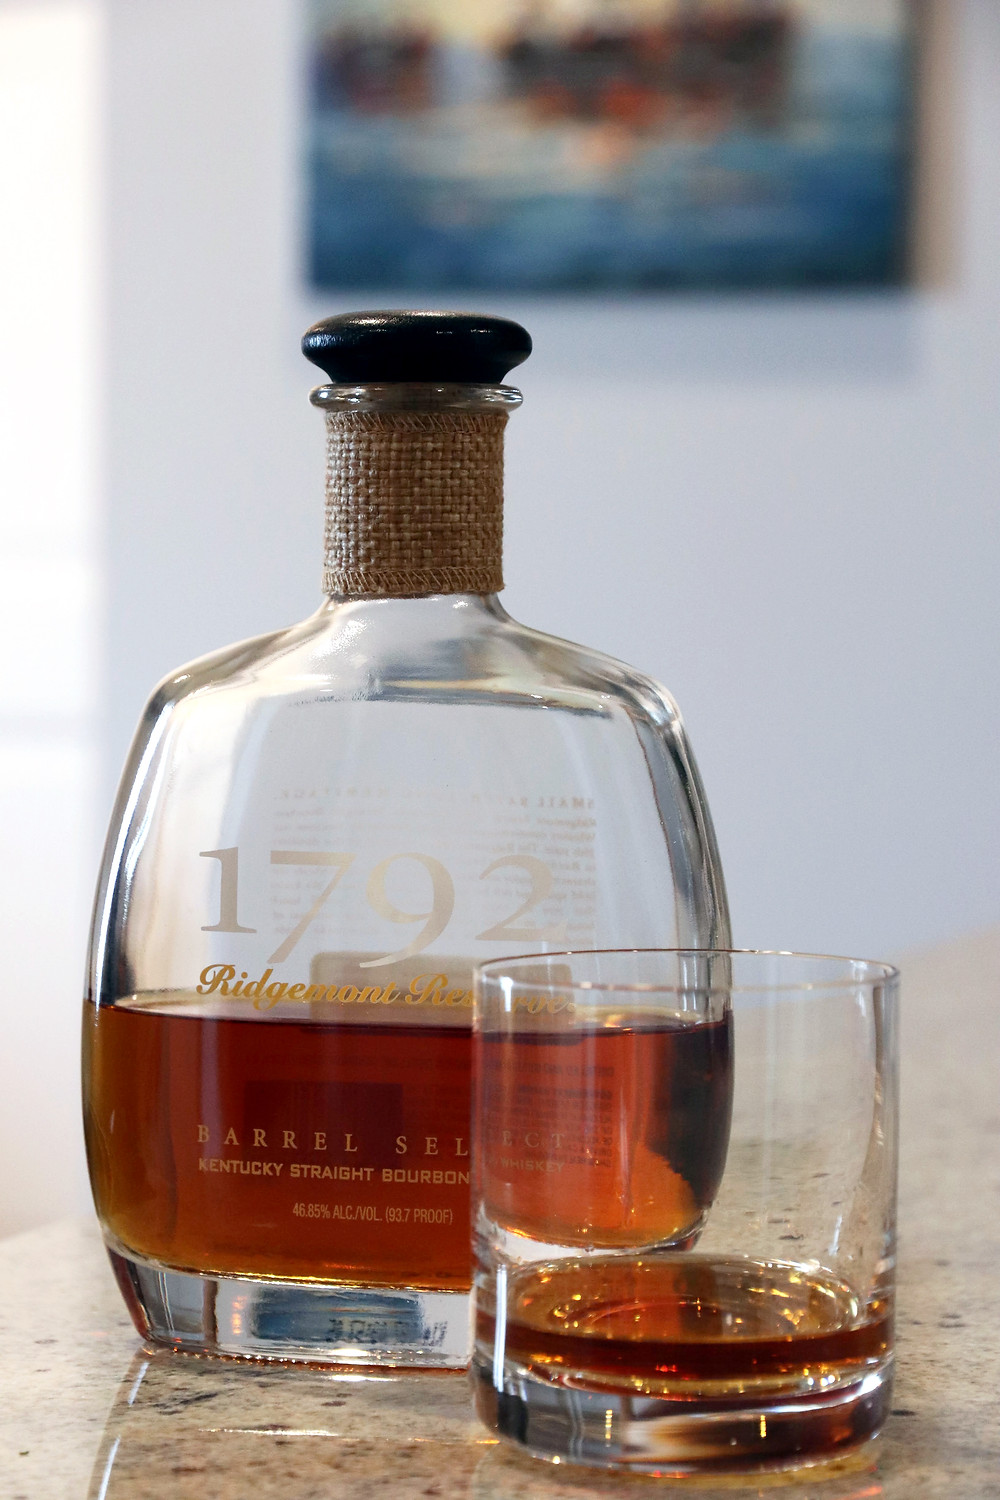 A bottle of 1792 bourbon with a small pour in a glass next to the bottle.